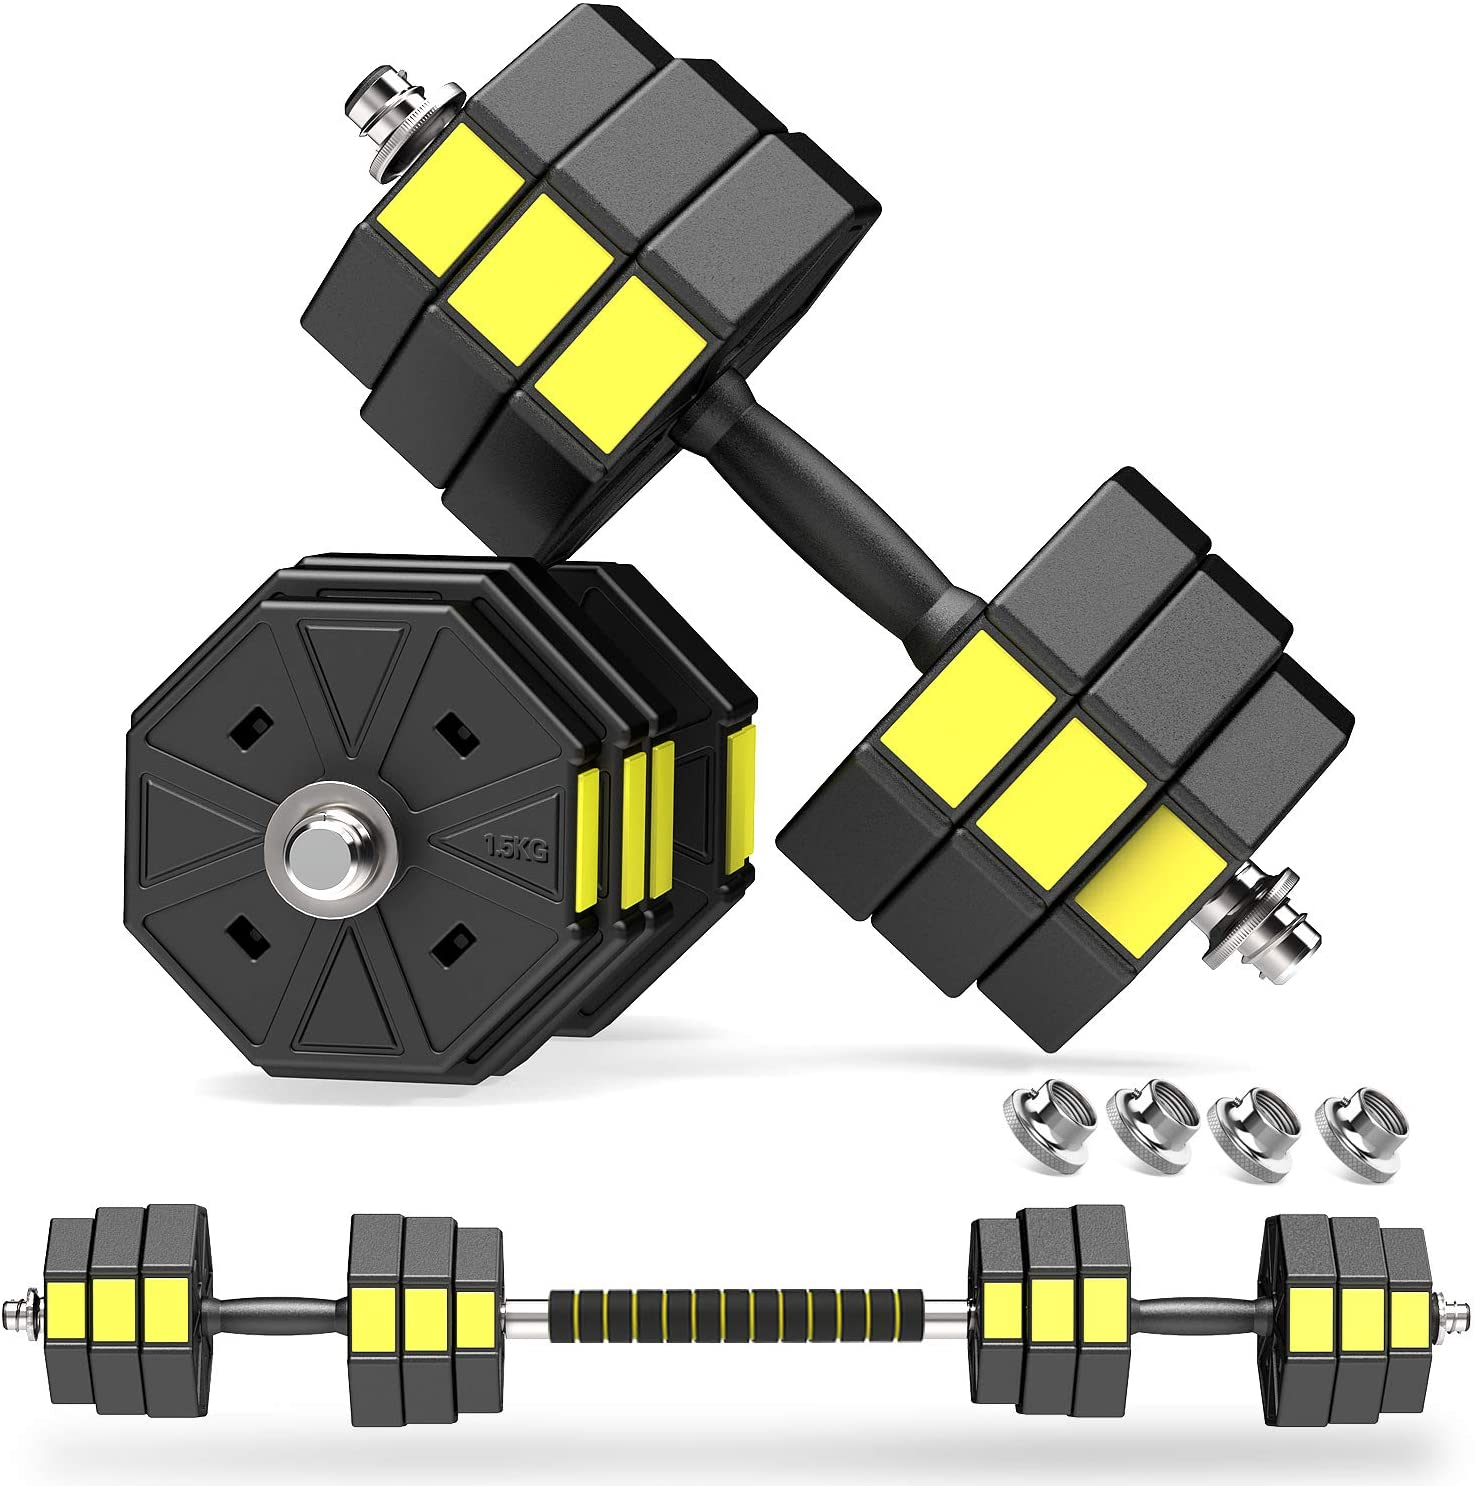 PANMAX Adjustable Dumbbells Barbell Set of 2, UP to 44/66 lbs Free Weight Set with Connector, 3 in 1 Dumbbell Barbells Set for Home Gym Fitness Exercises for Men/Women